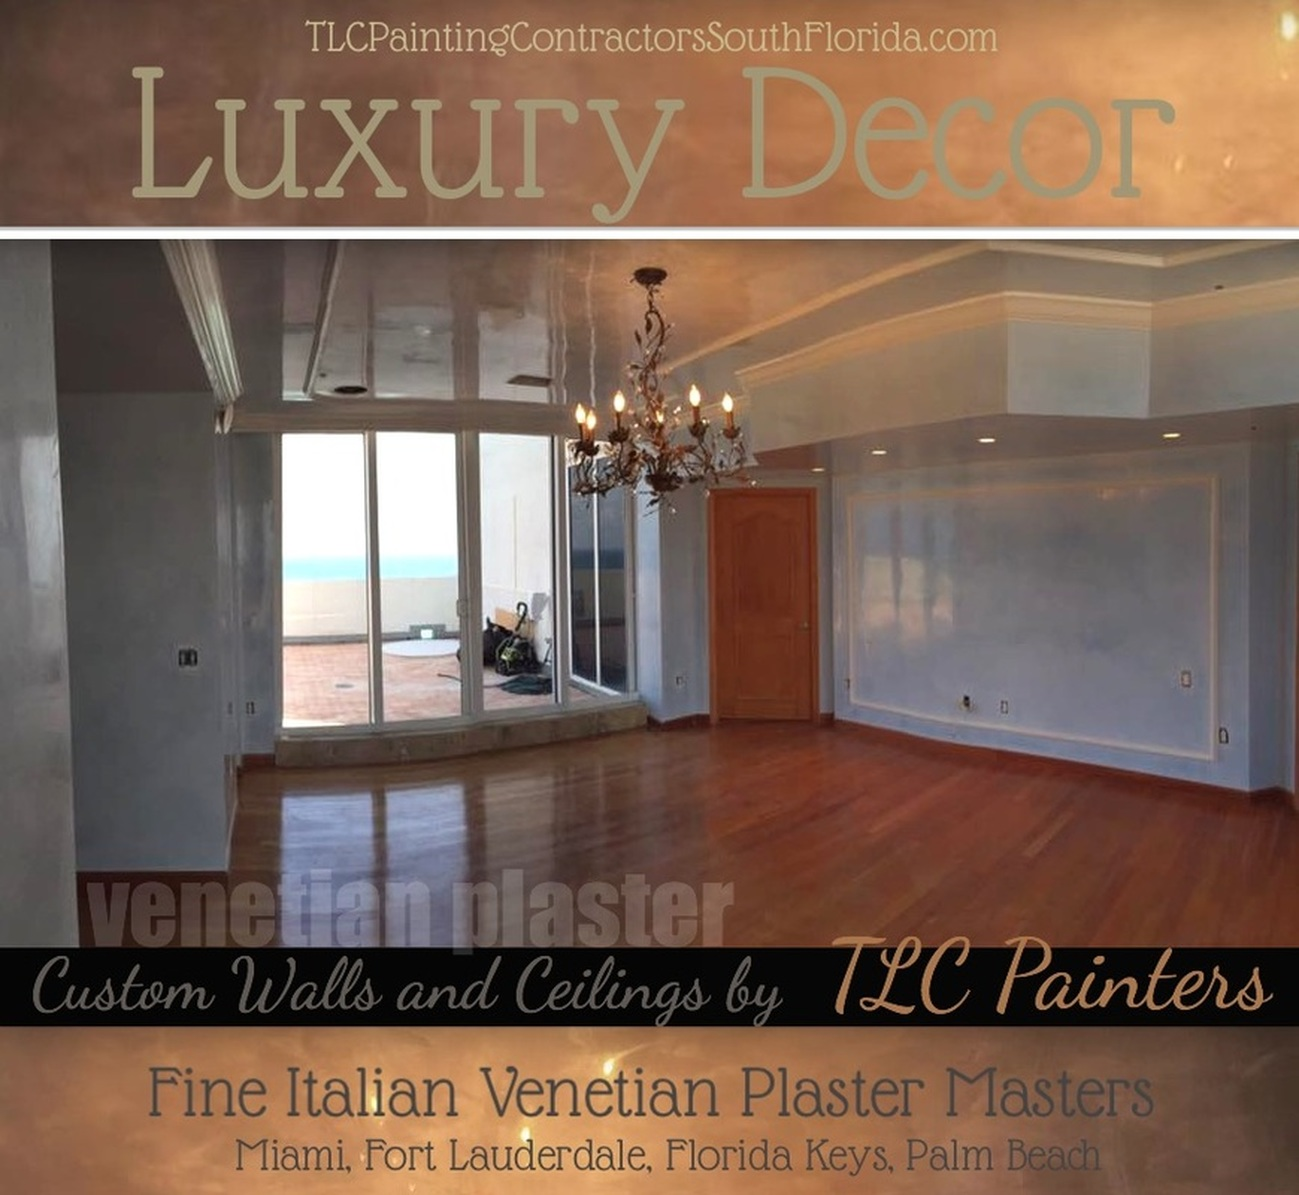 Venetian plaster in Palm Beach, Miami and Fort Lauderdale